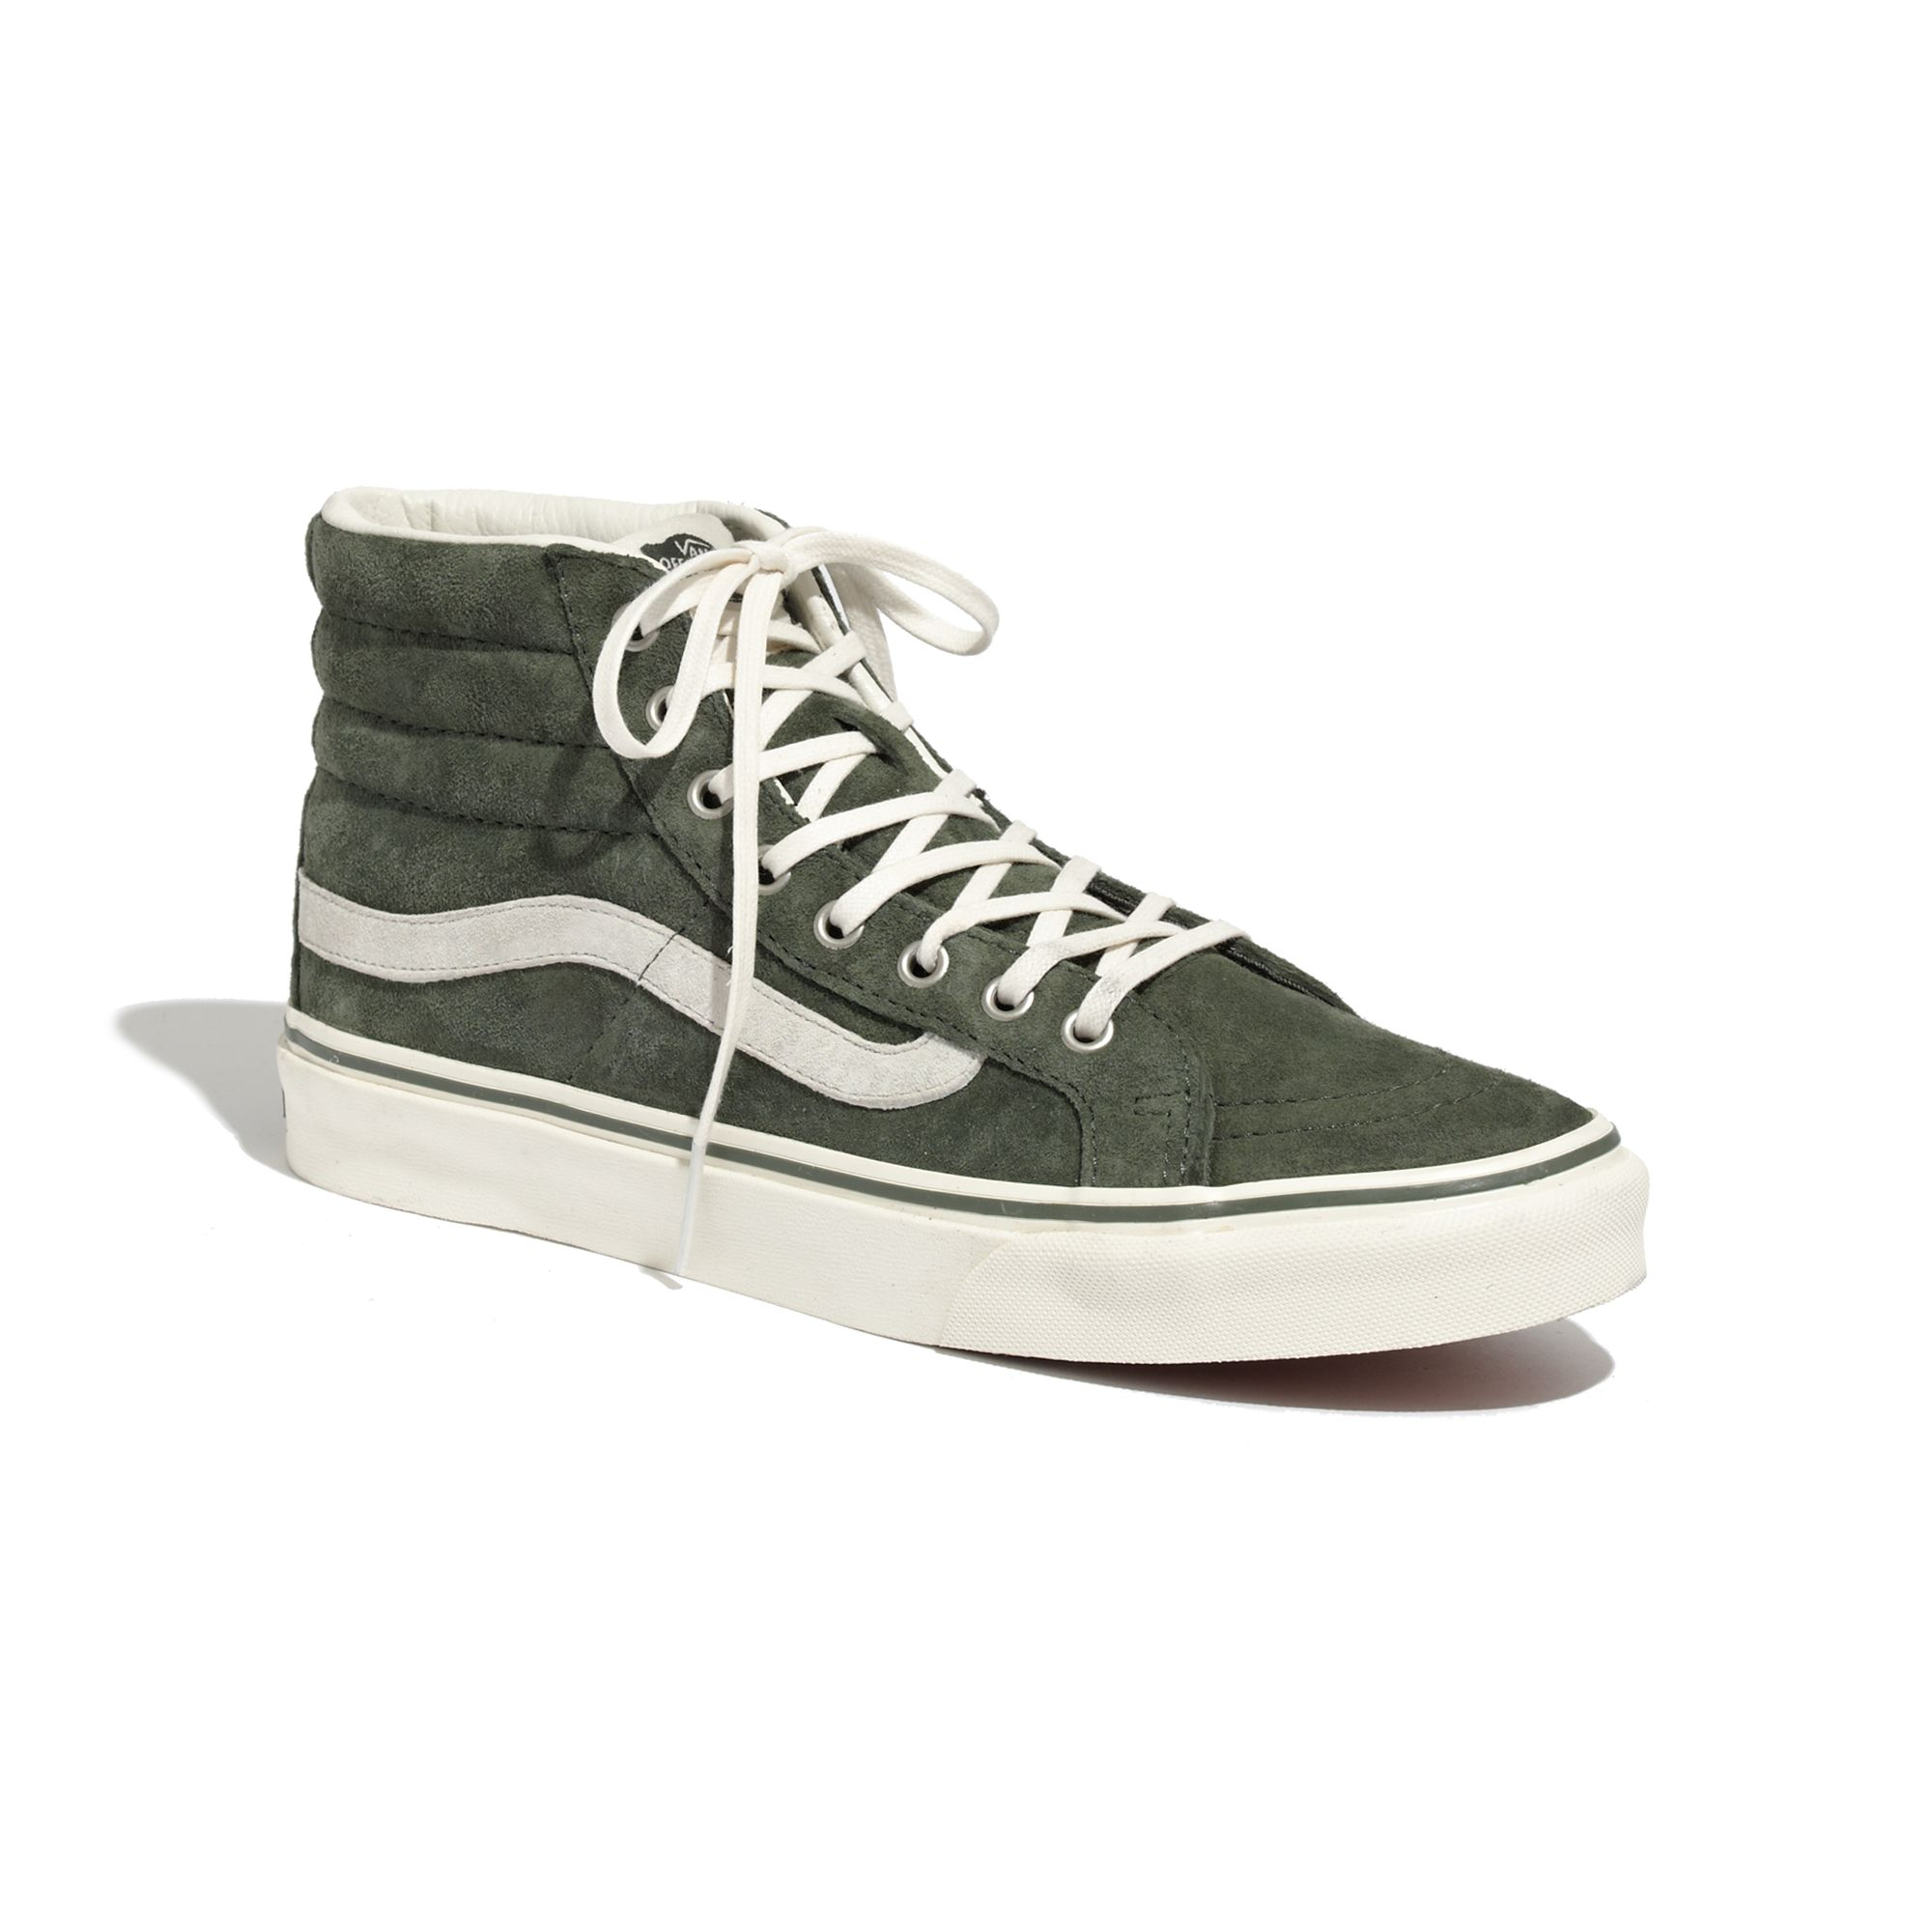 a43bd56bf57 Lyst - Madewell Vans Reg  Sk8-Hi Slim High-Tops In Suede in Green